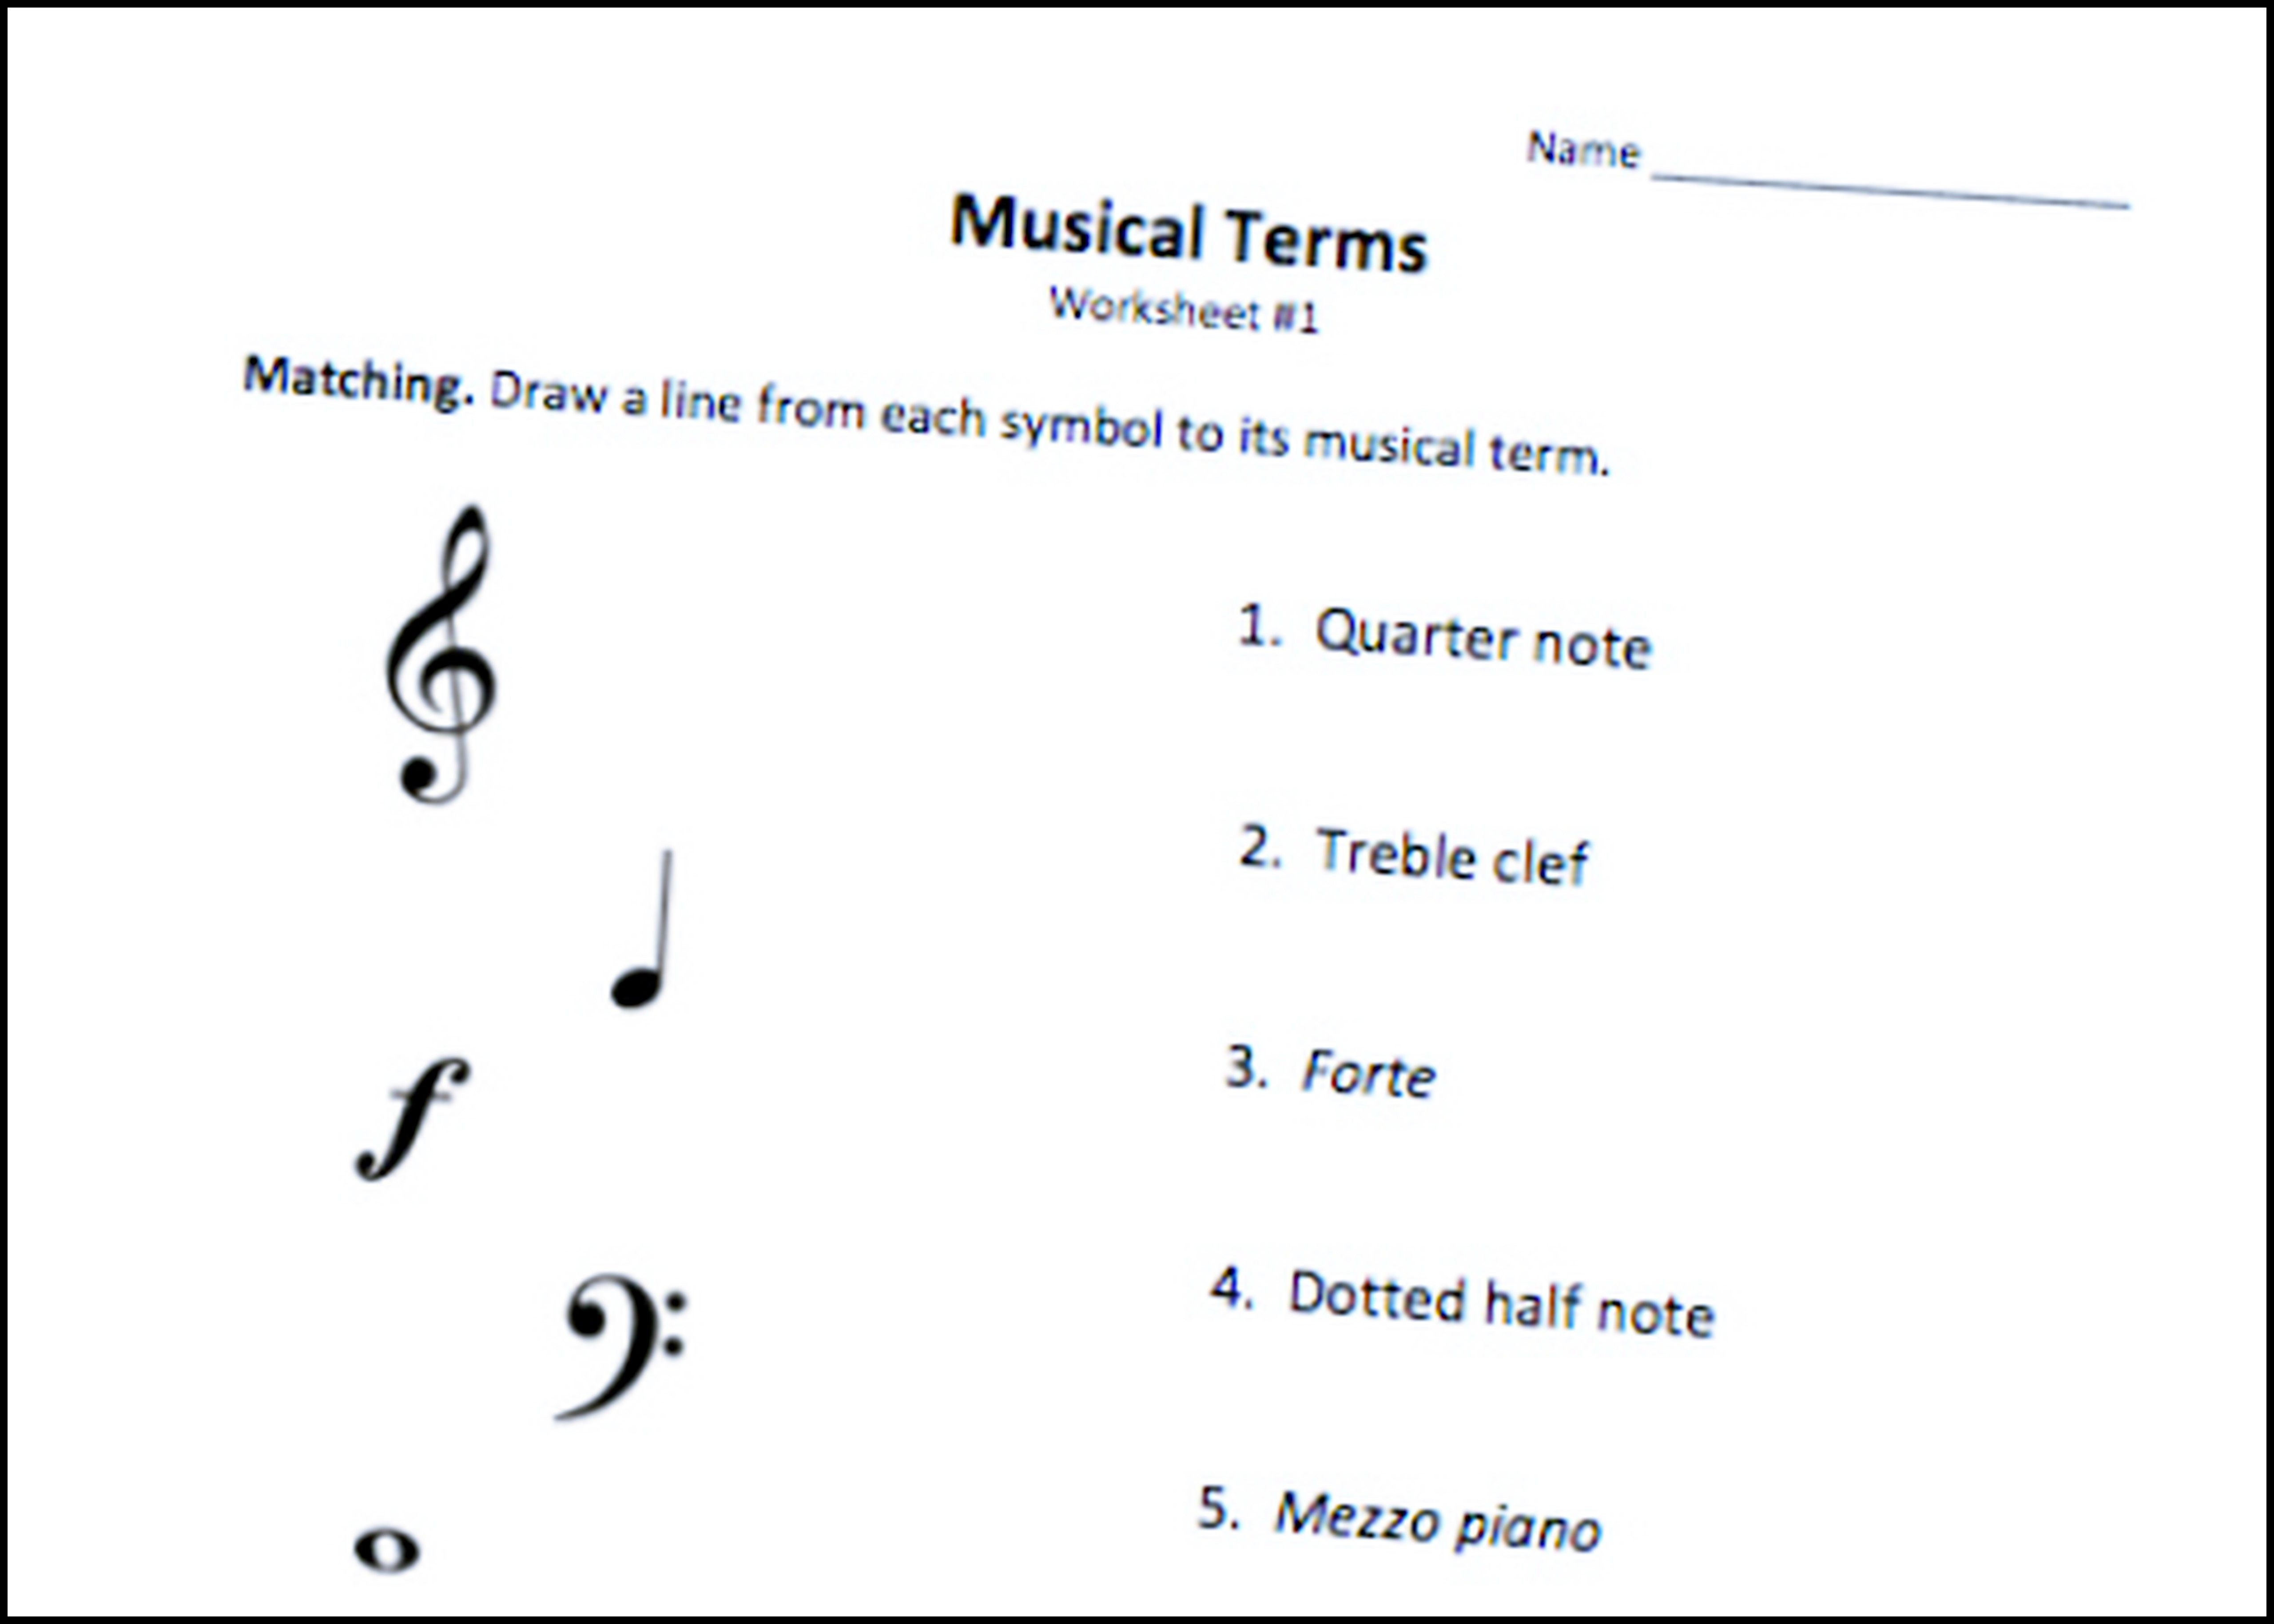 Worksheets Music Theory Worksheets Pdf excellent free pdf files for music theory and musicians theory